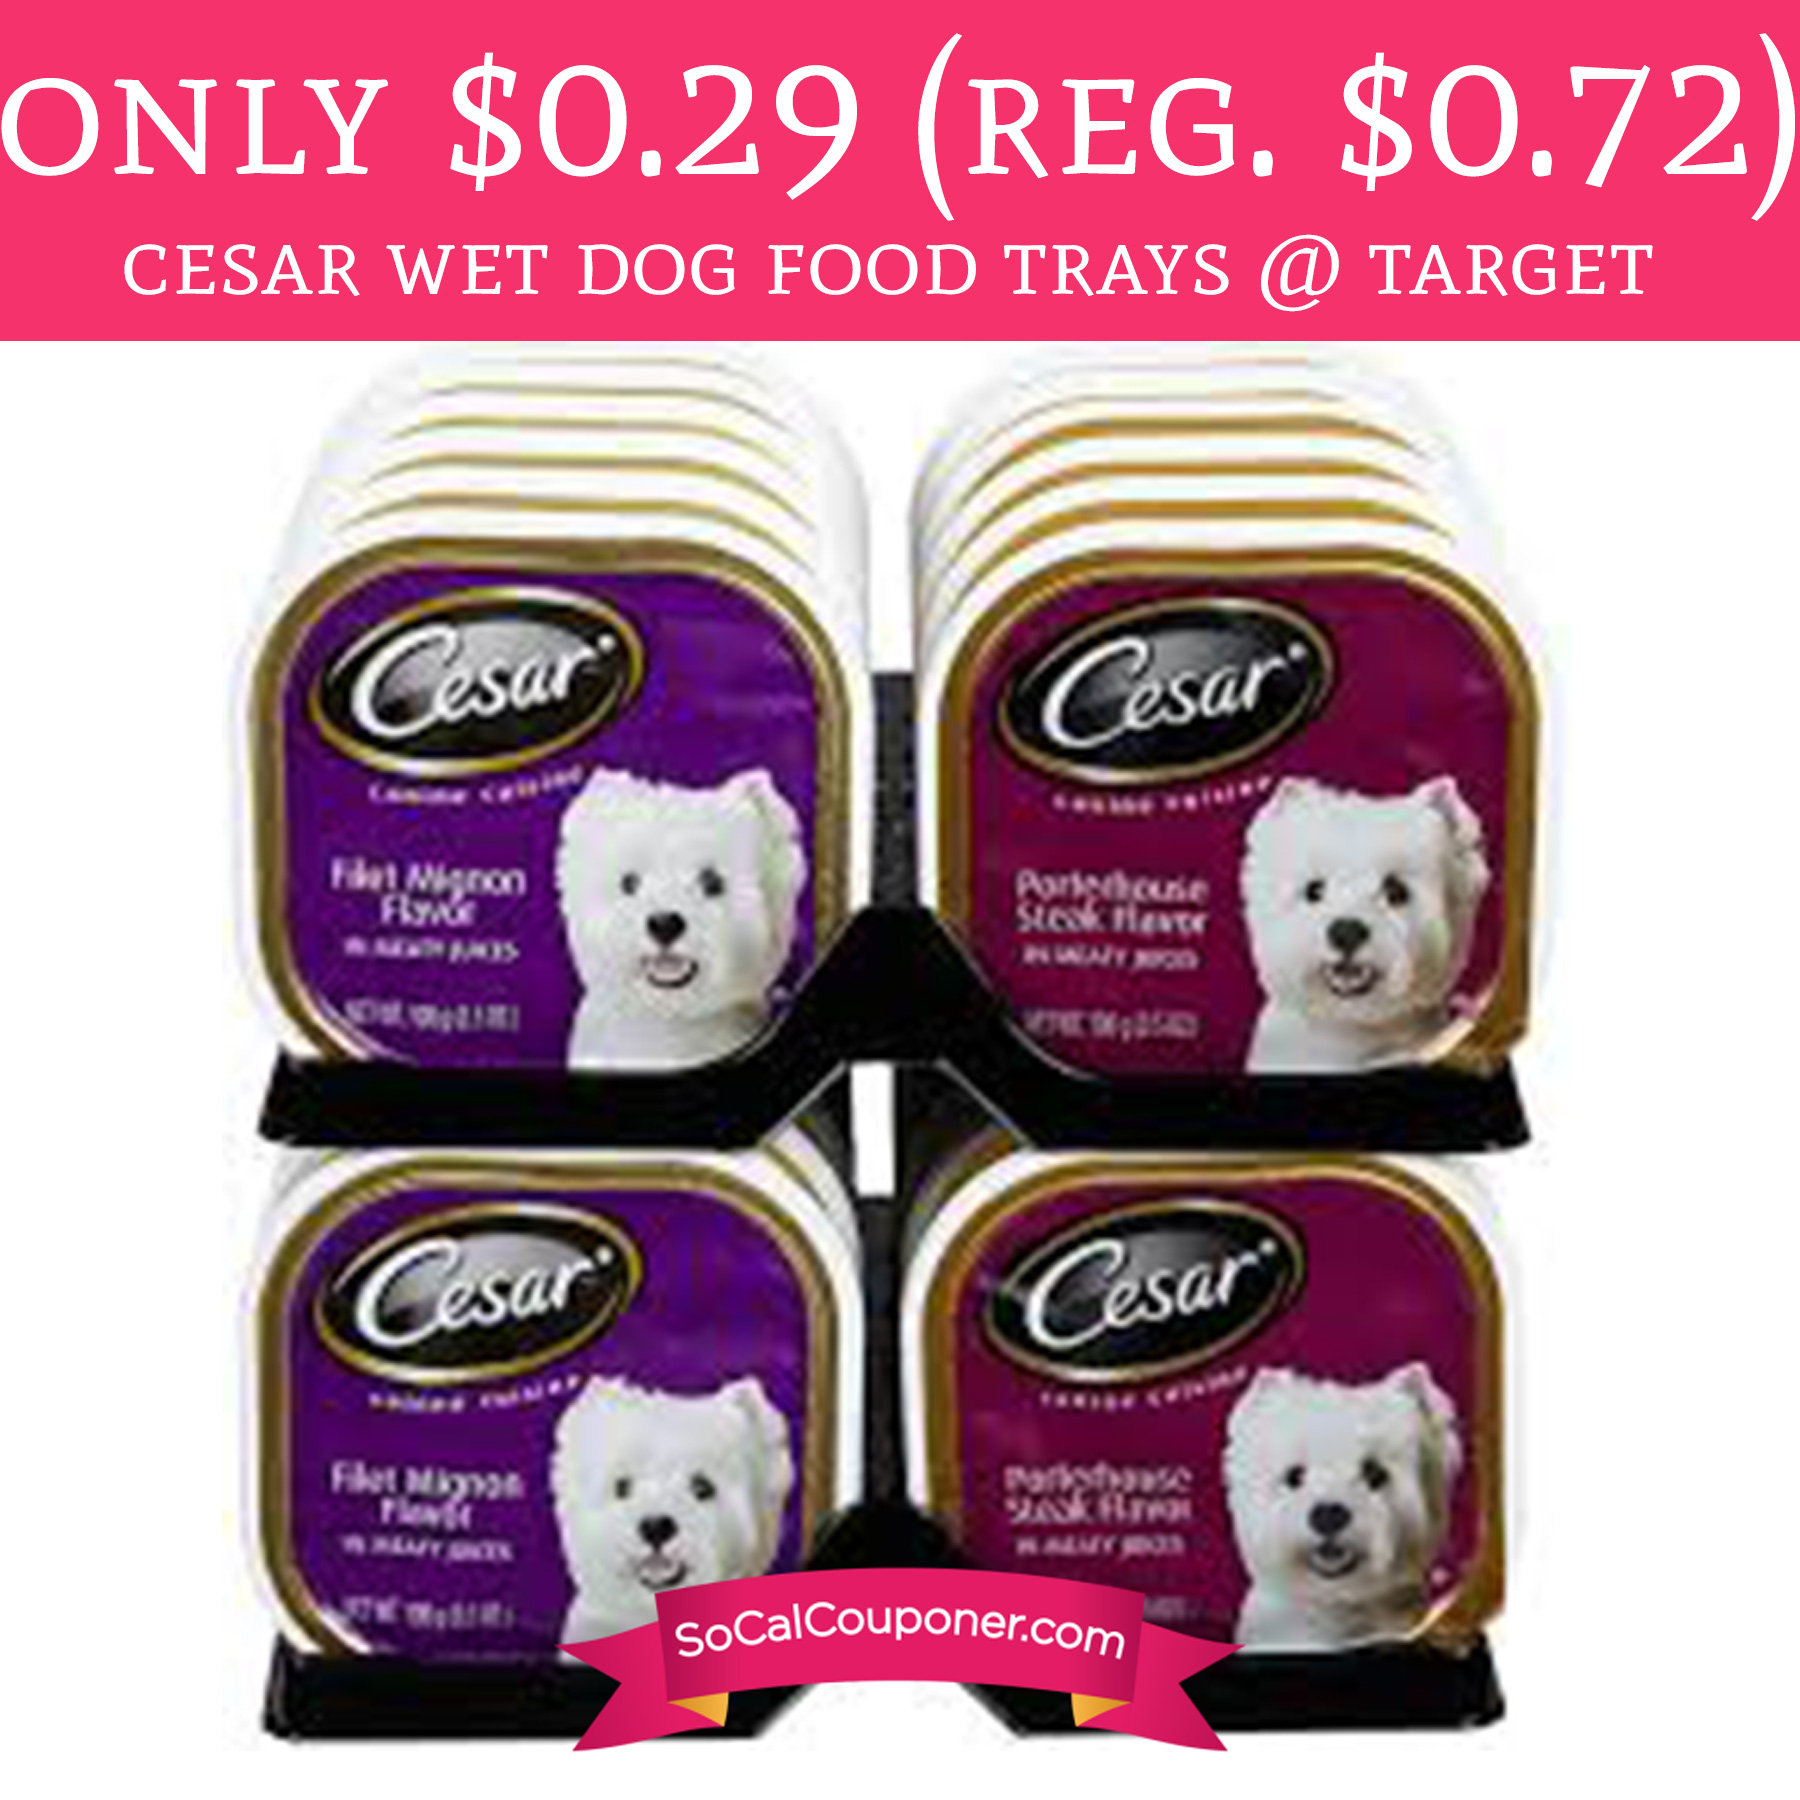 The product affected was the Classics Filet Mignon wet dog food sold in ounce trays and variety packs. Save Money with Cesar Dog Food Coupons One of the reasons Cesar dog food is so popular among pet owners is that it is inexpensive and easy to find.